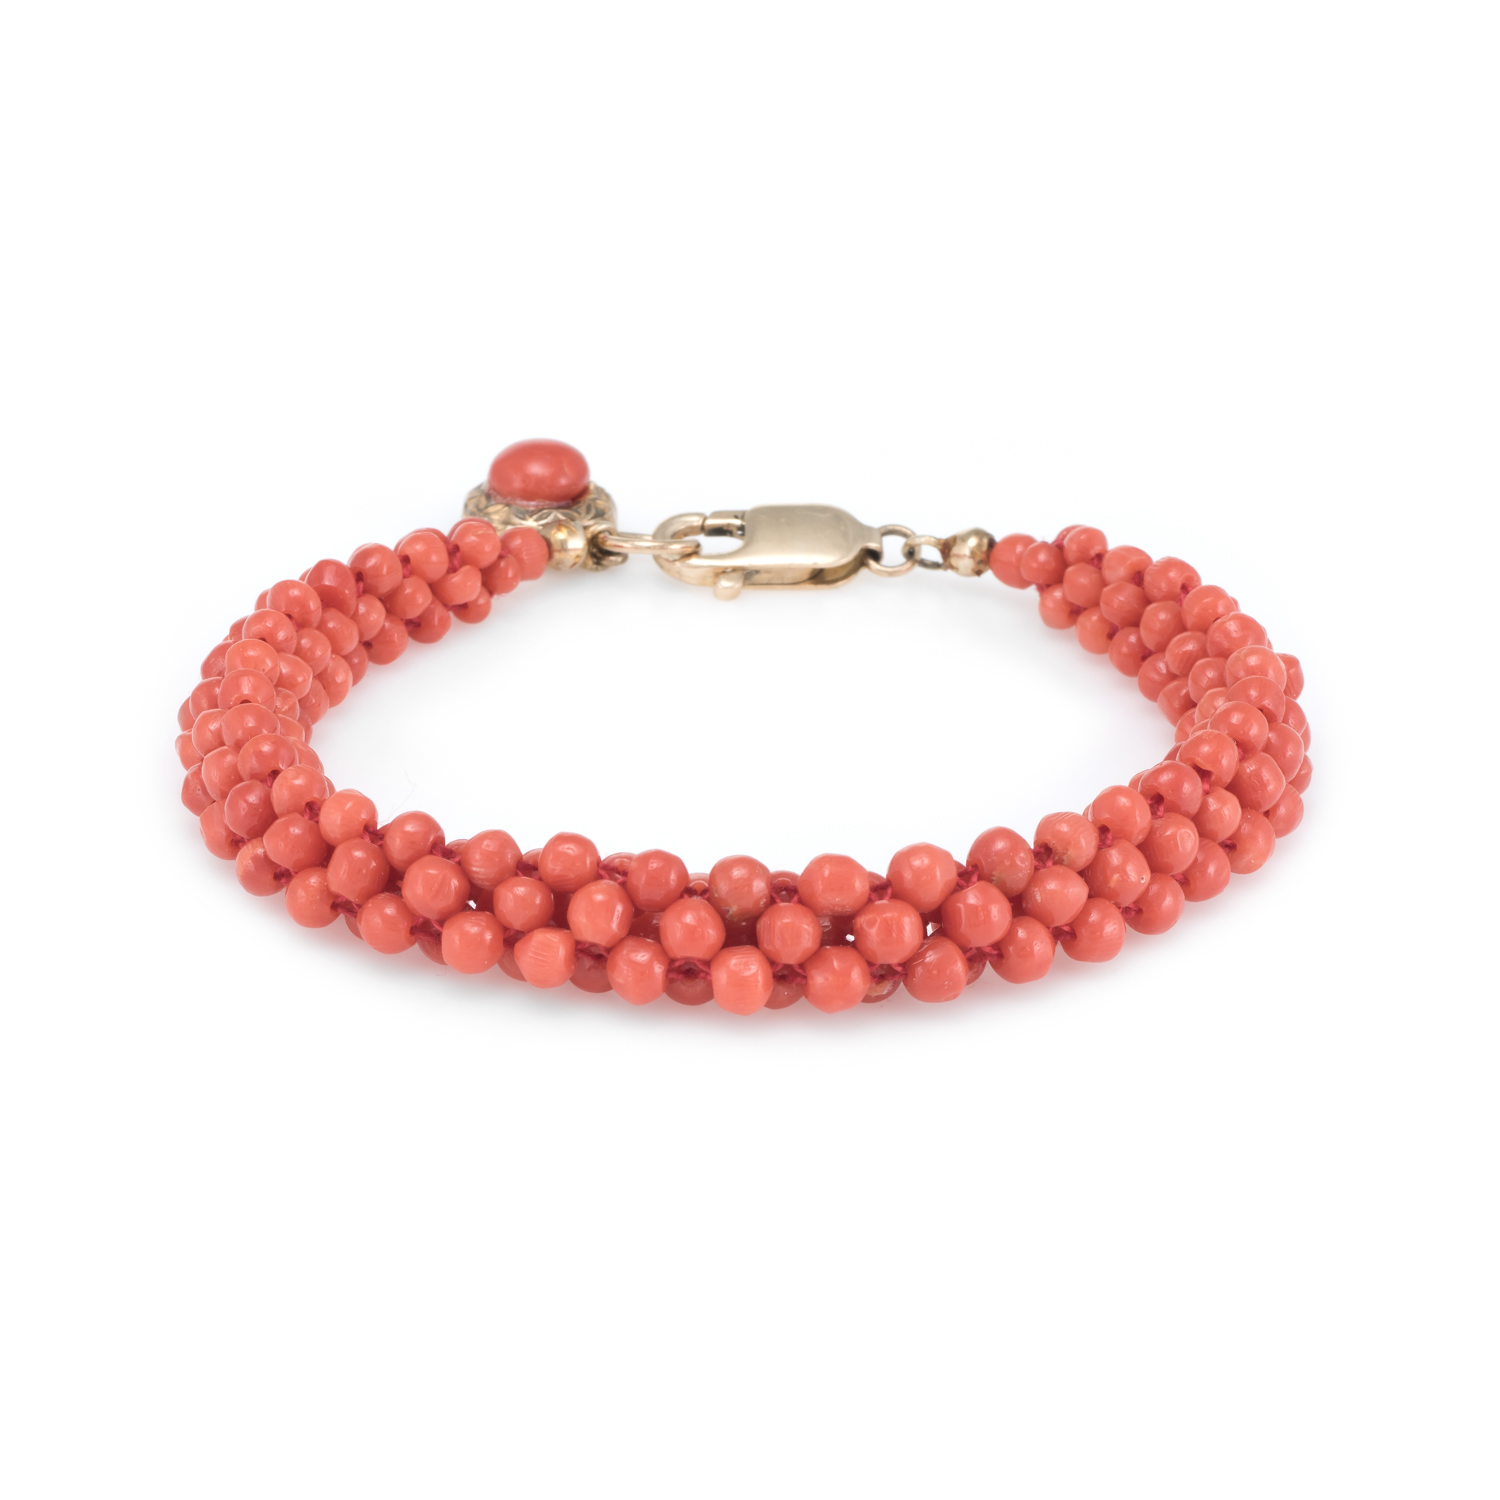 276776c8f Details about Mediterranean Red Coral Bead Bracelet Vintage 14k Yellow Gold  Estate Jewelry